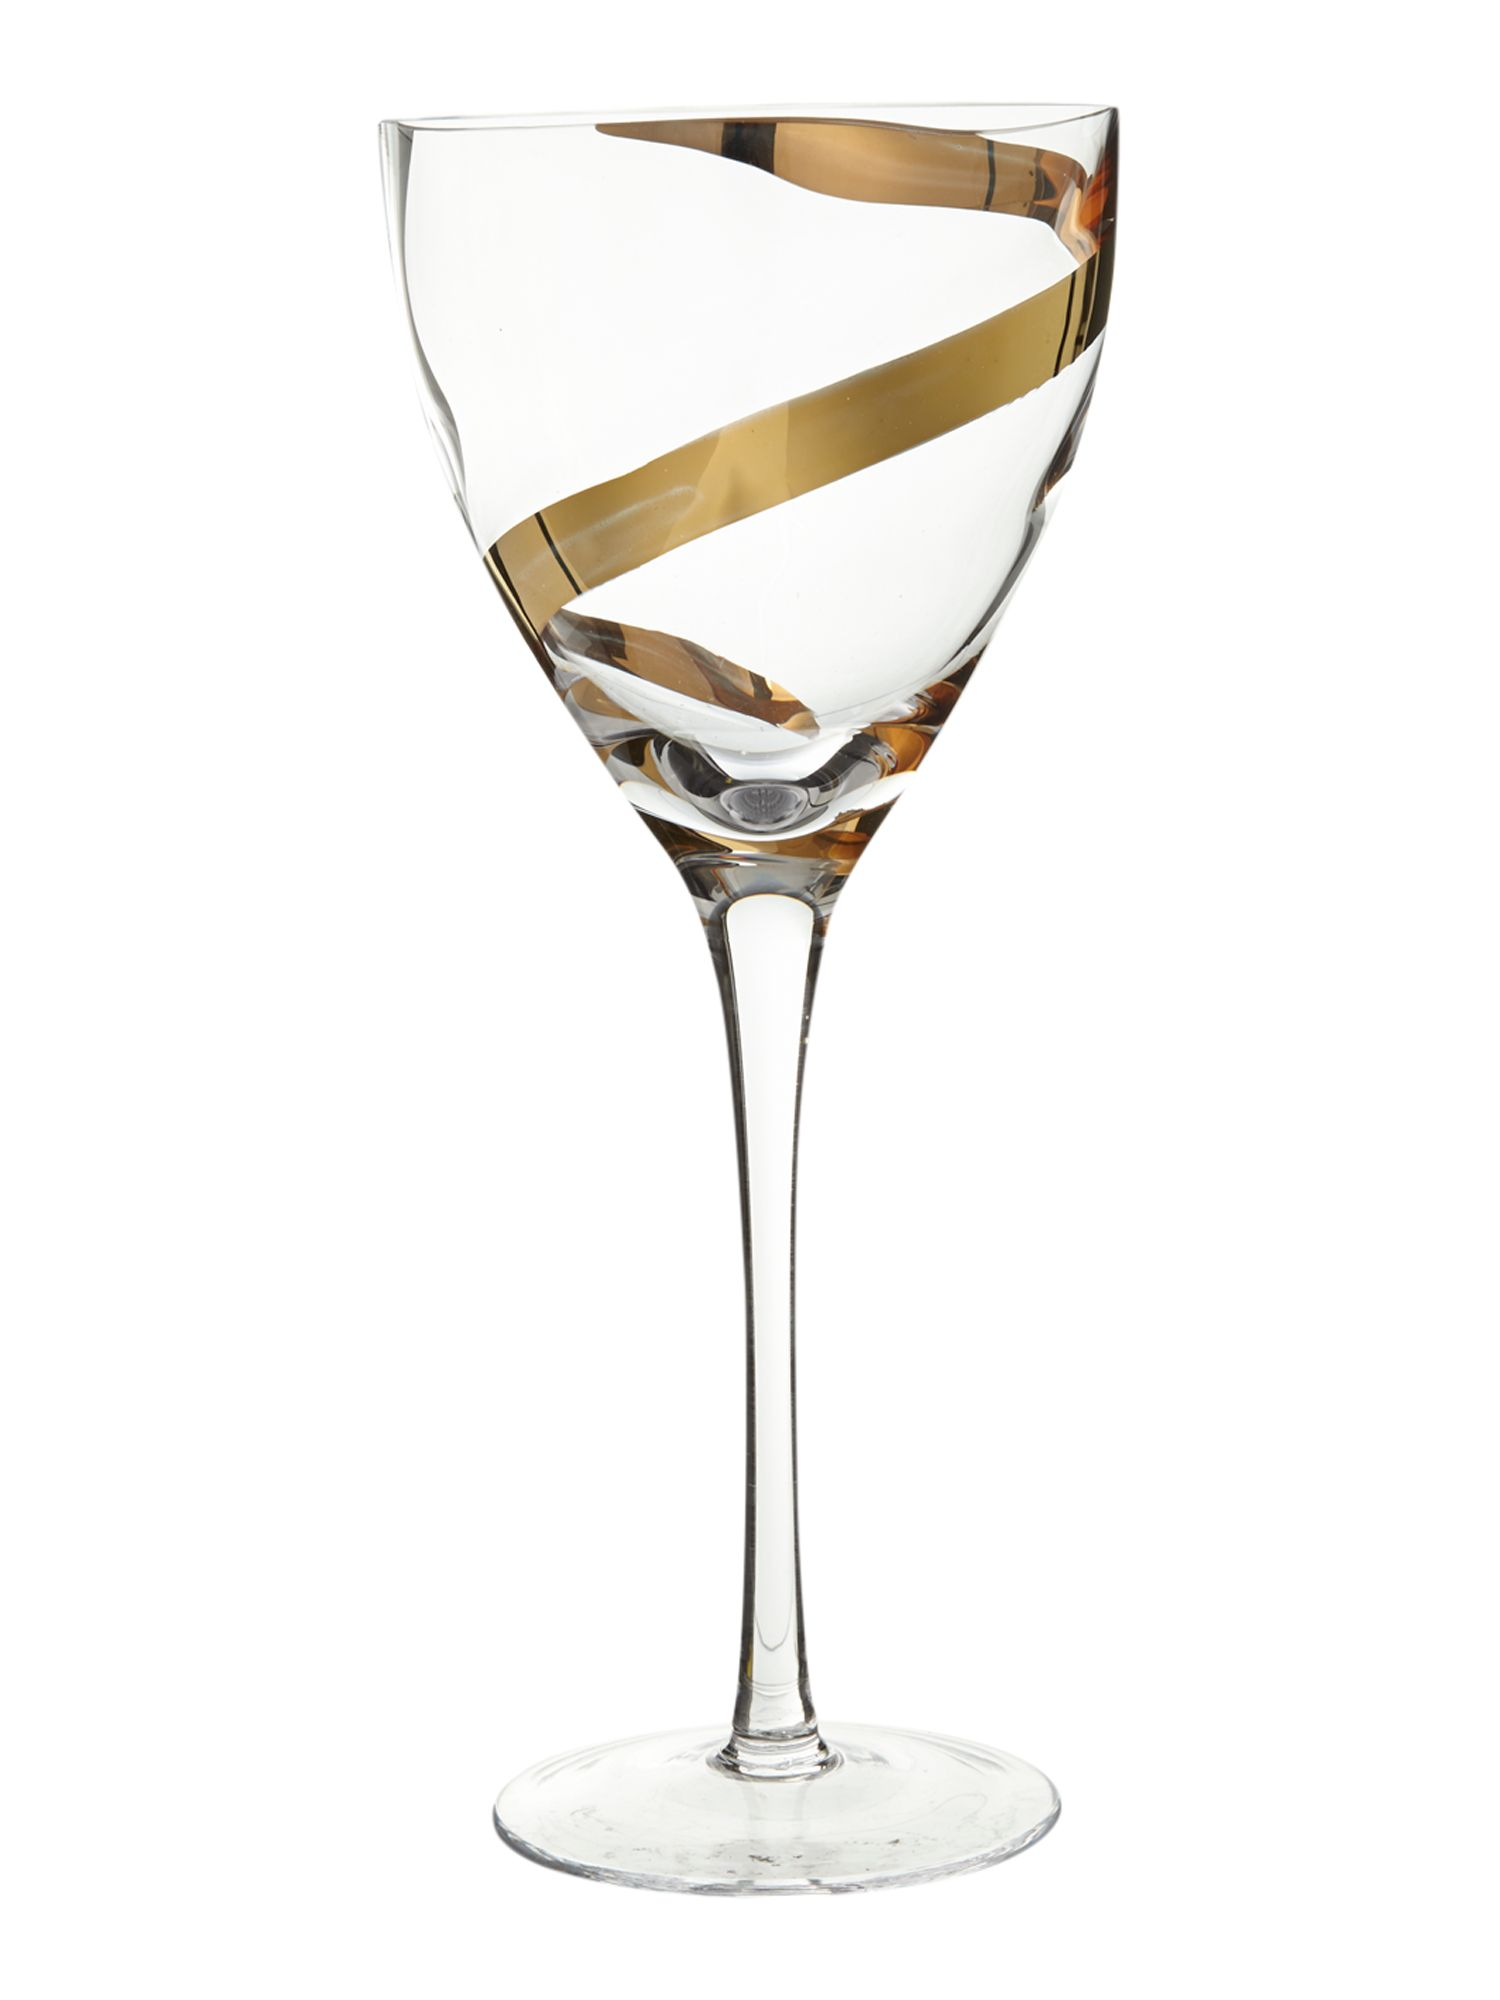 Malika wine glasses, set of 2